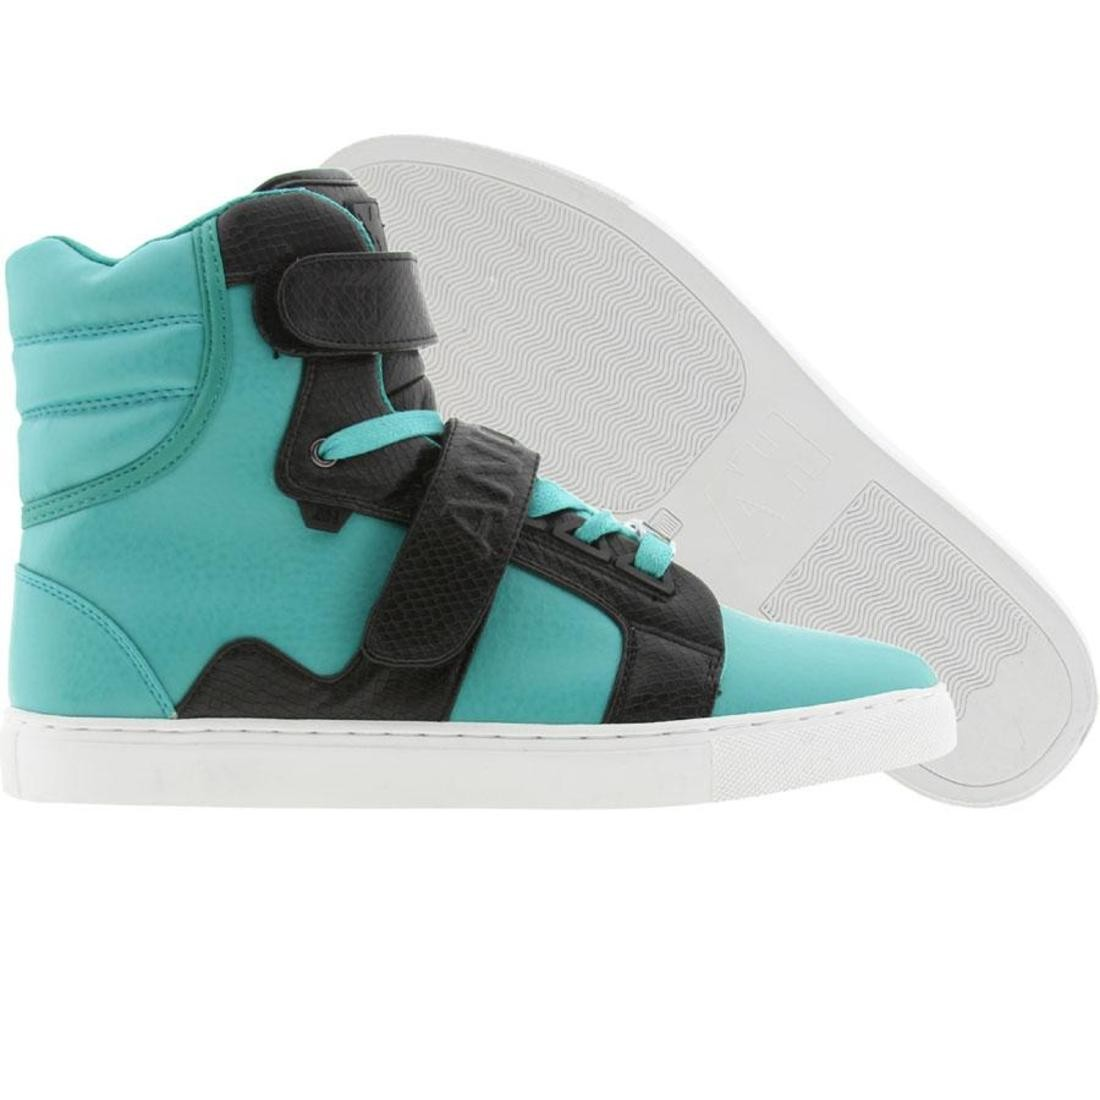 【海外限定】ハイ メンズ靴 靴 【 AH BY ANDROID HOMME PROPULSION HIGH GREEN BLACK 】